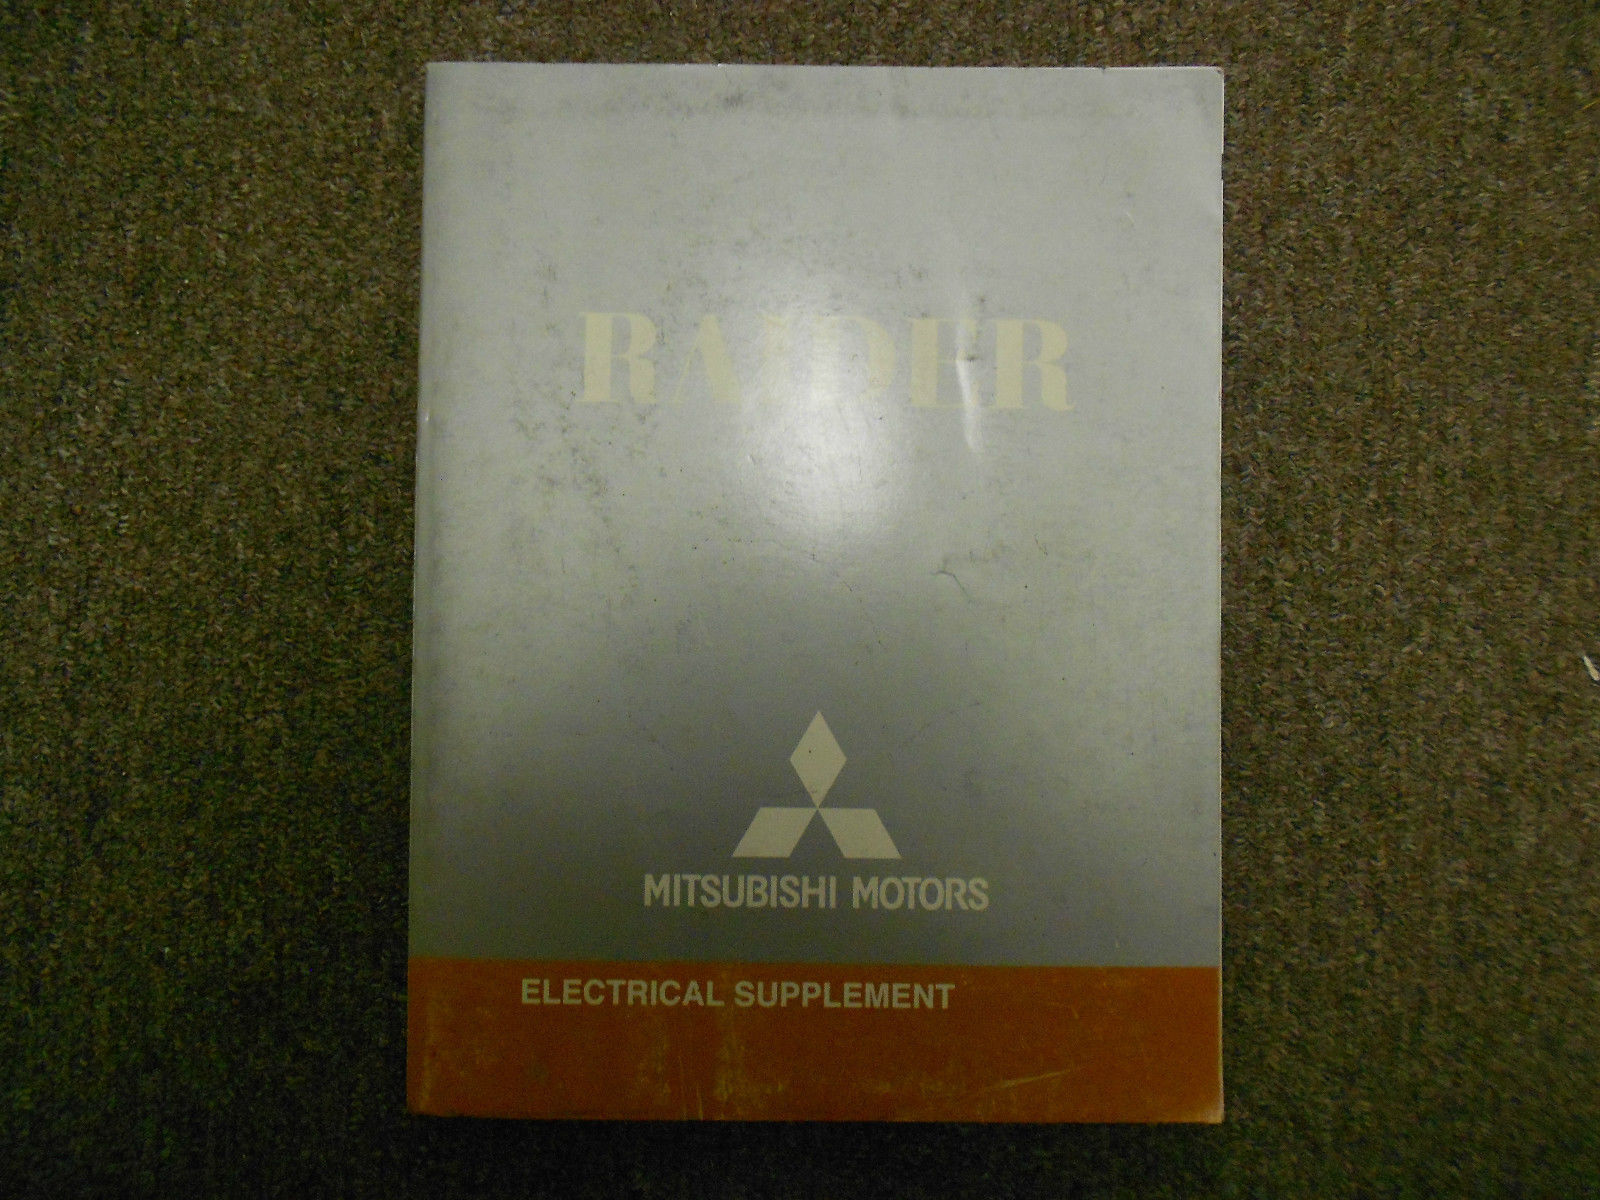 2007 MITSUBISHI Raider Electrical Supplement Service Repair Shop Manual WORN 07